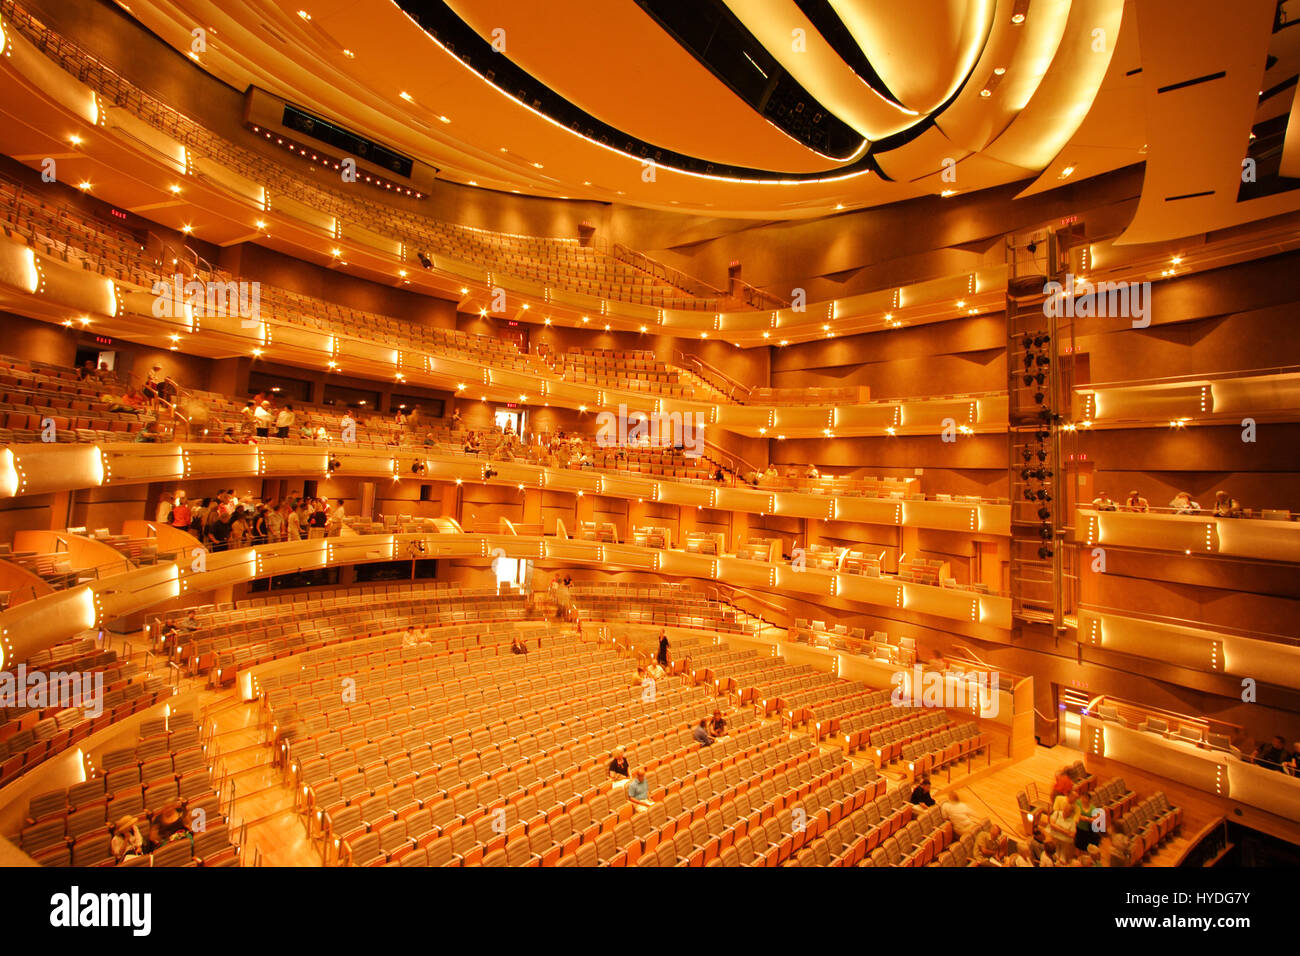 The opera house toronto pictures canada